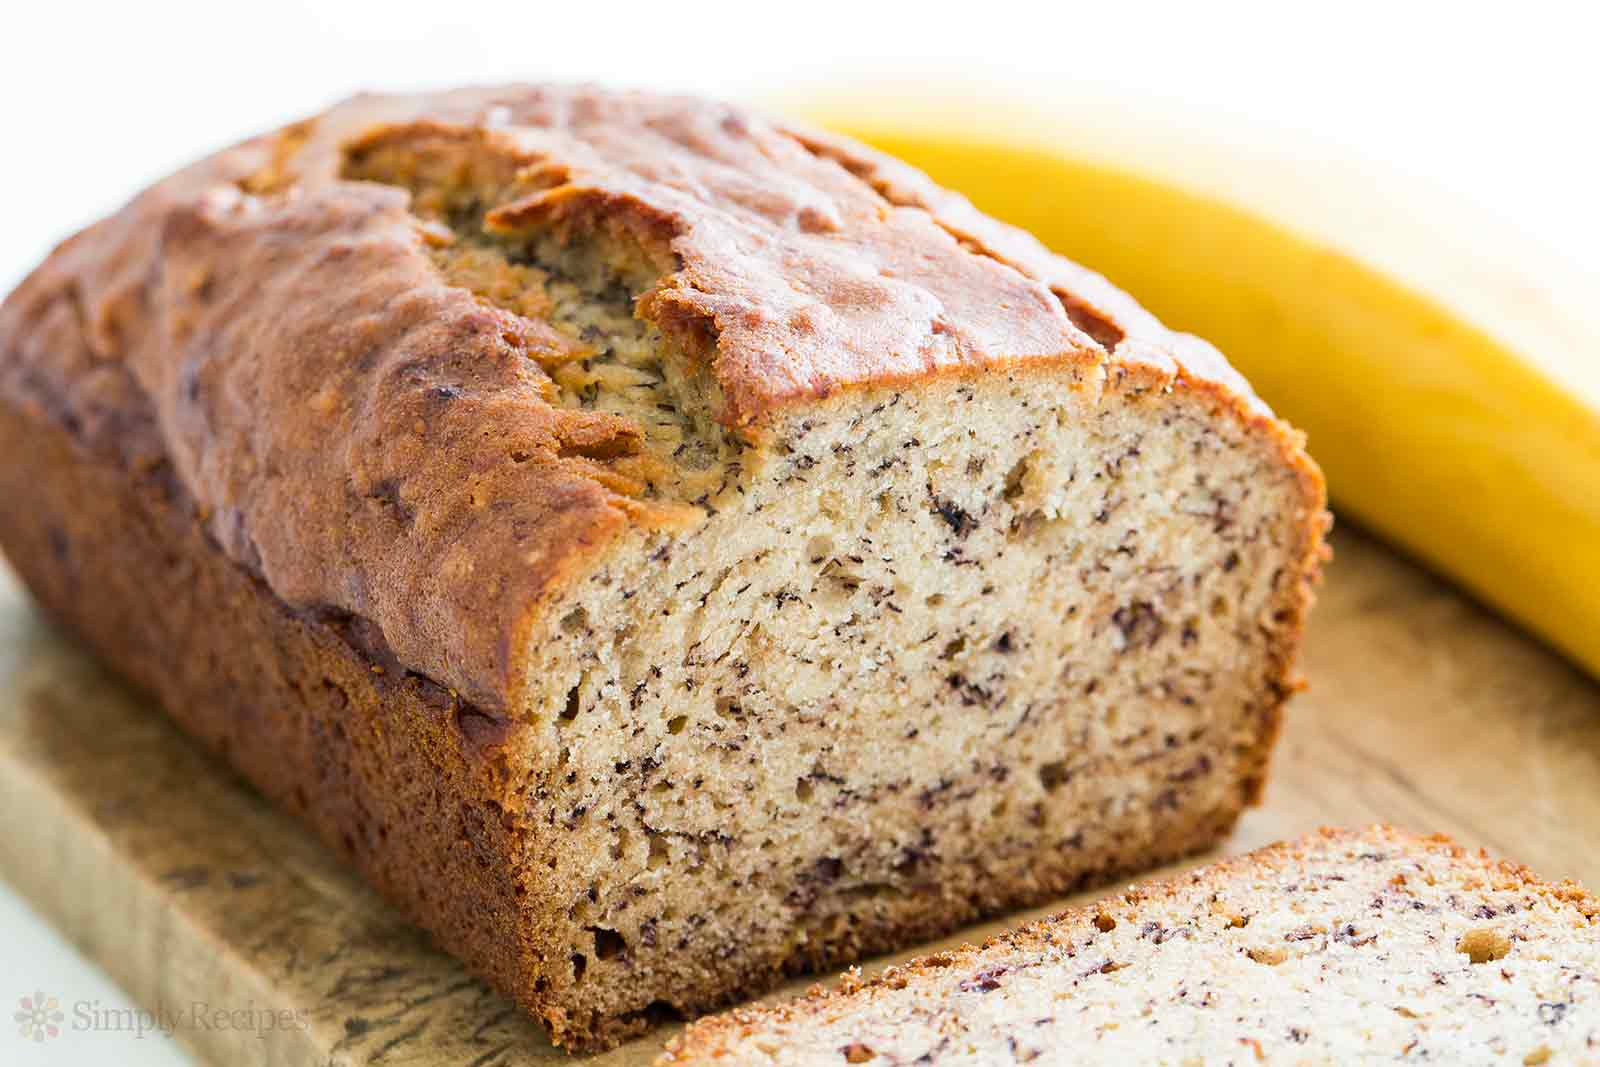 Banan Bread … So what IS in it?